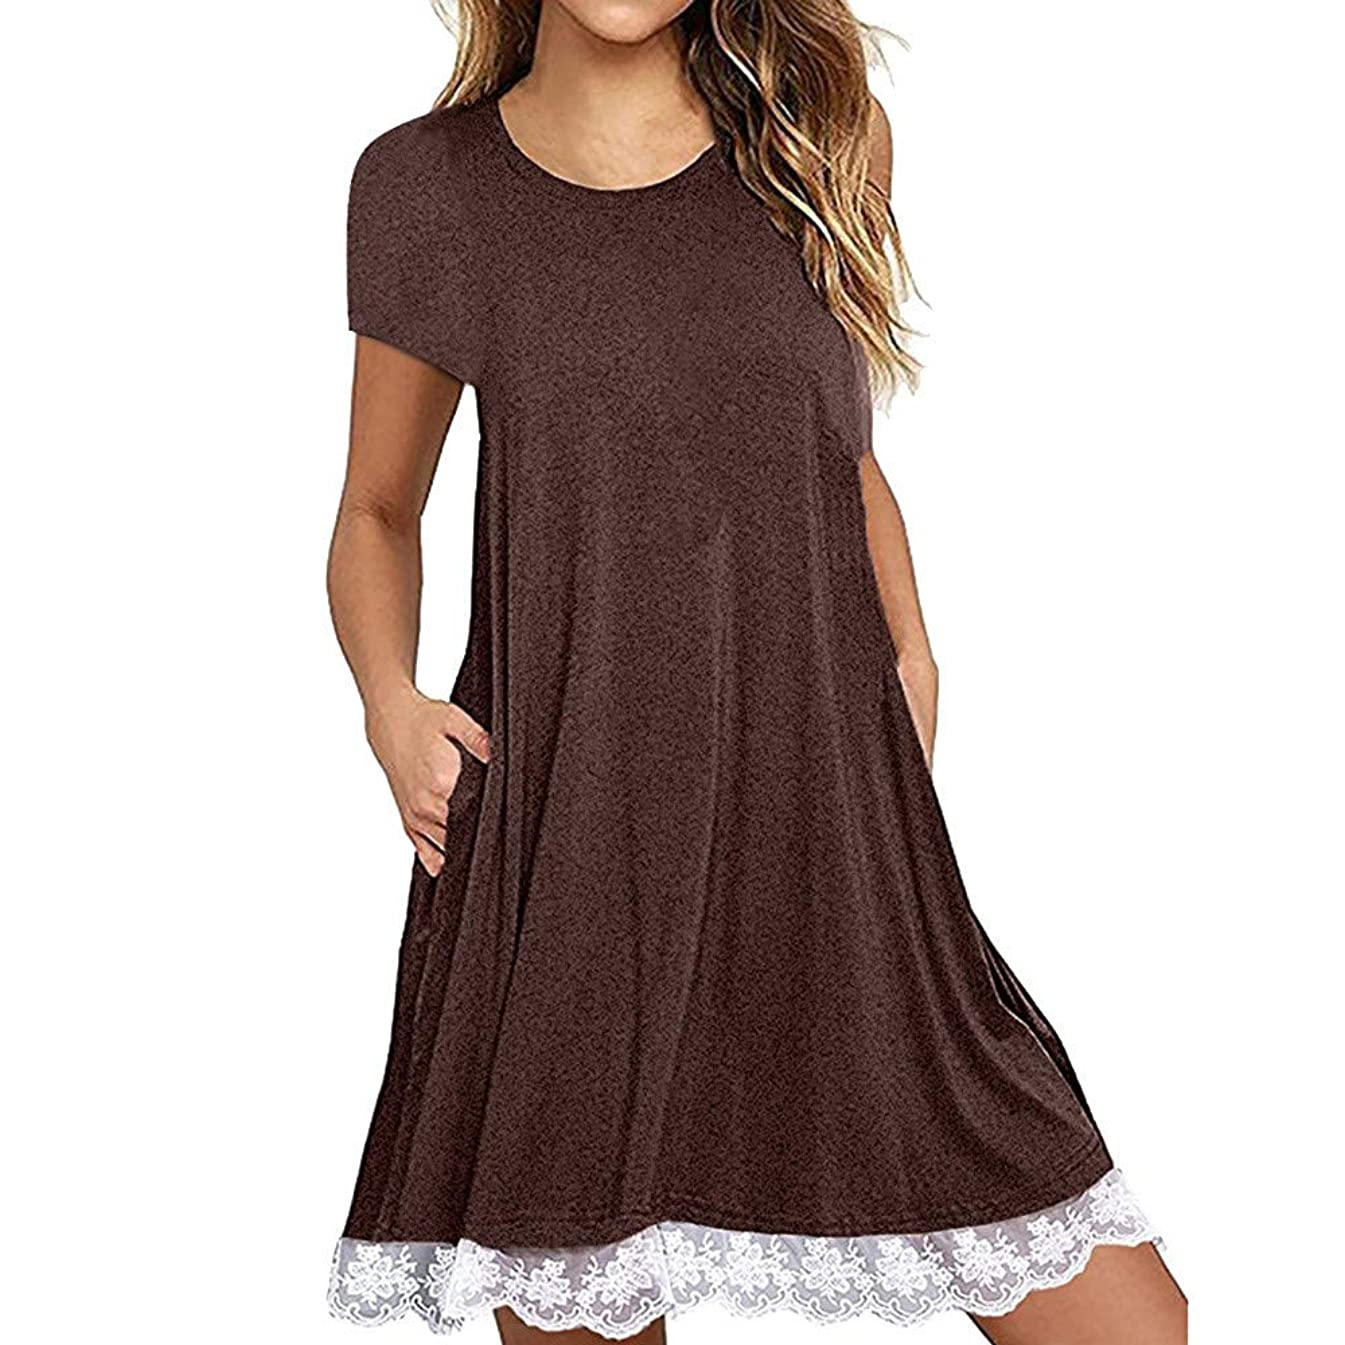 Jebess Women O Neck Casual Daily Life Lace Short Sleeve Above Knee Solid Dress Loose Party Dress